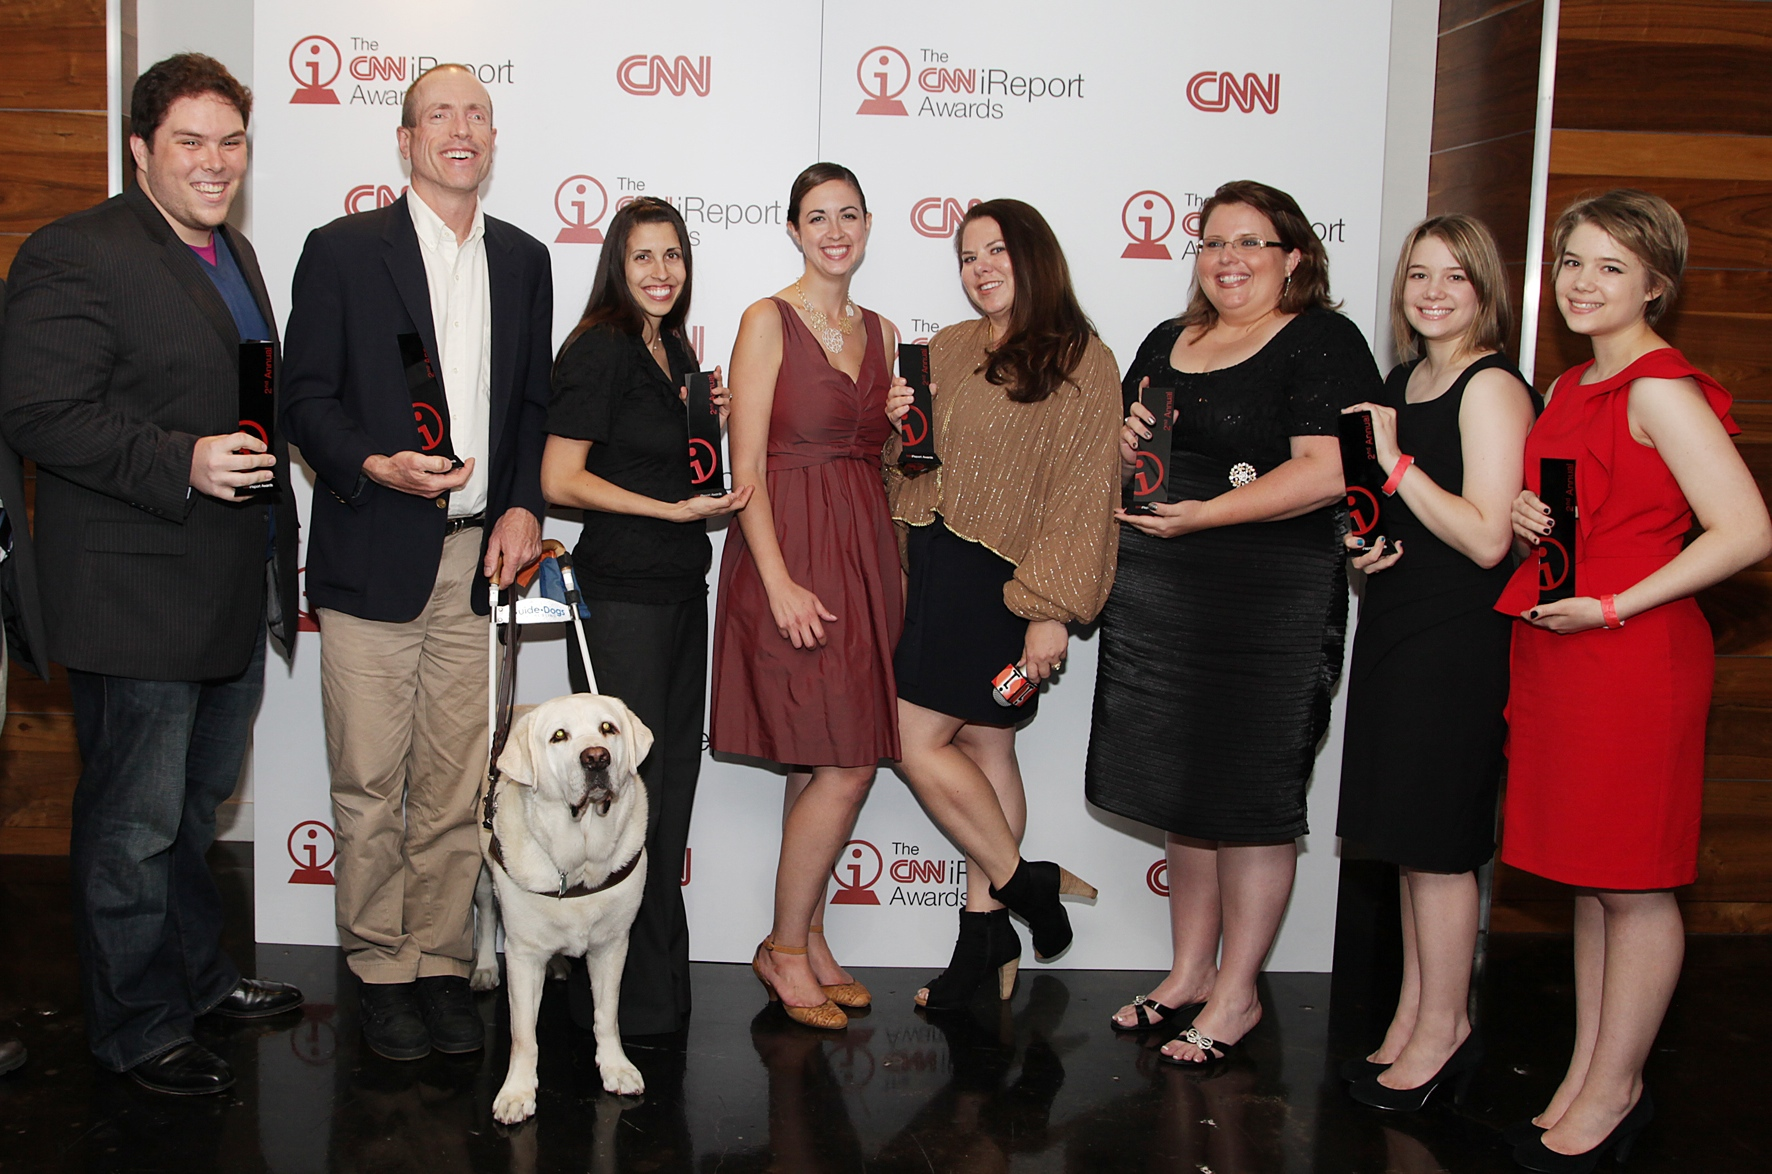 CNN Reveals the Recipients of the Second Annual CNN iReport Awards